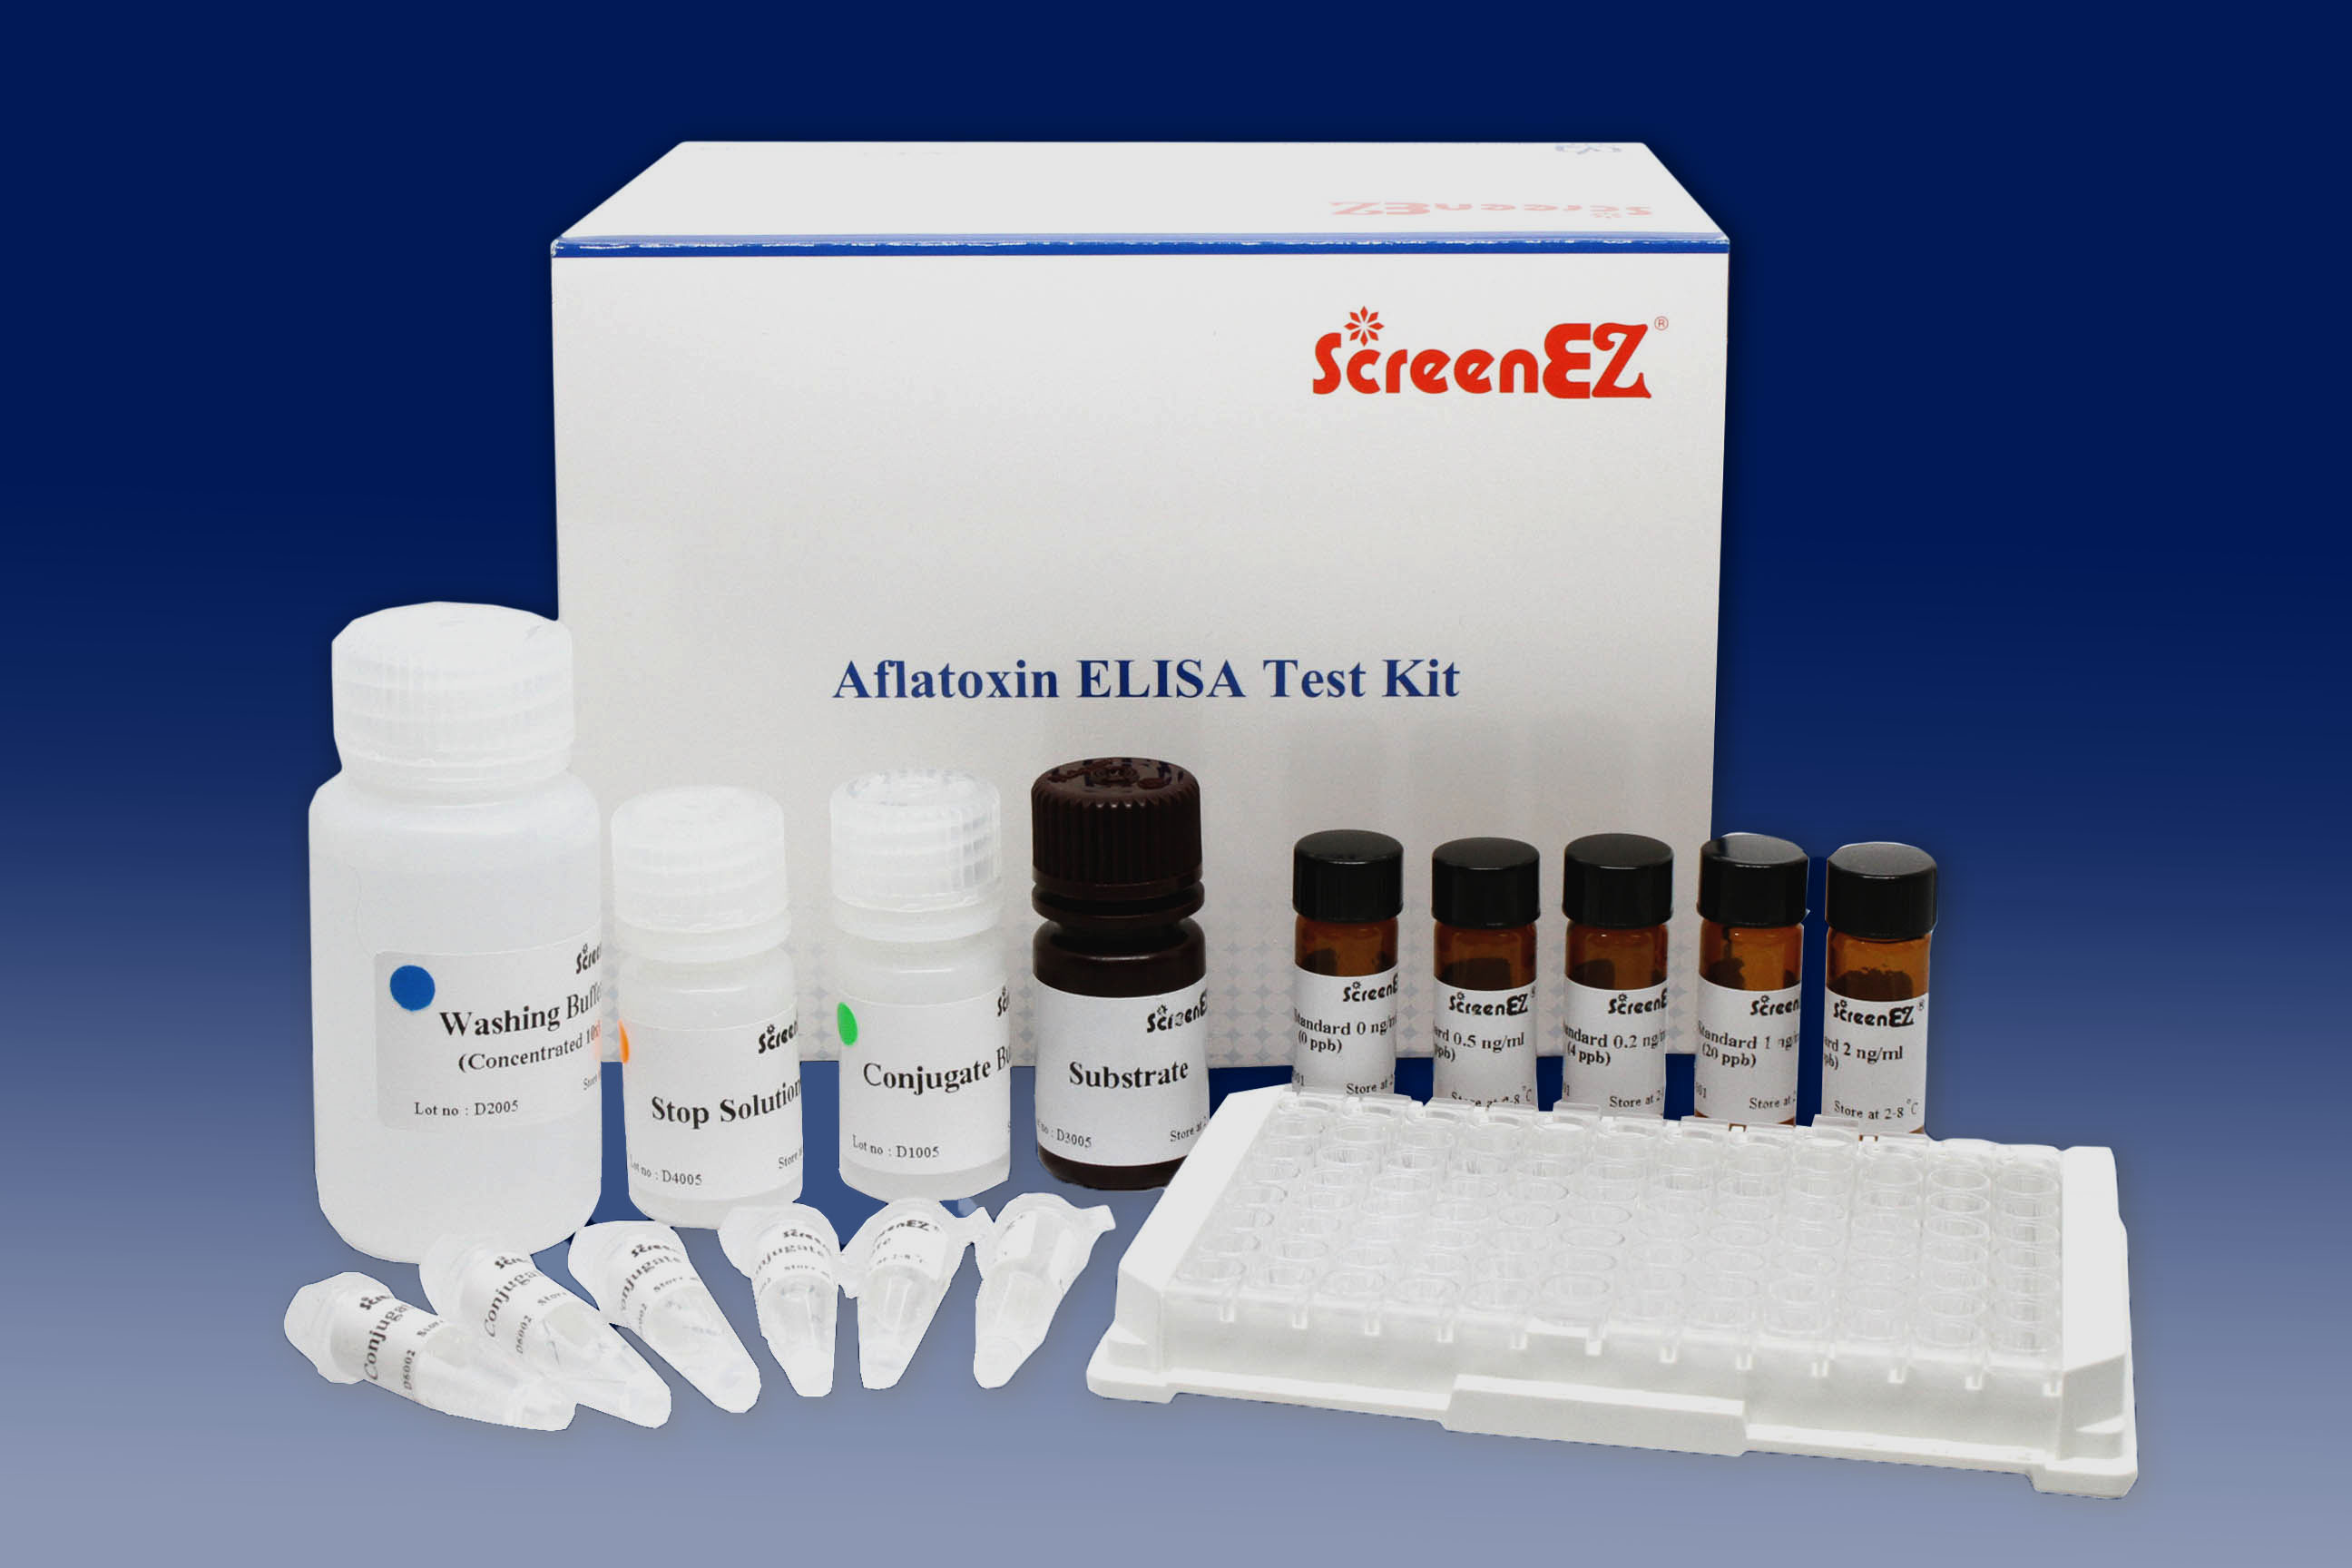 ScreenEZ Aflatoxin ELISA Test Kit